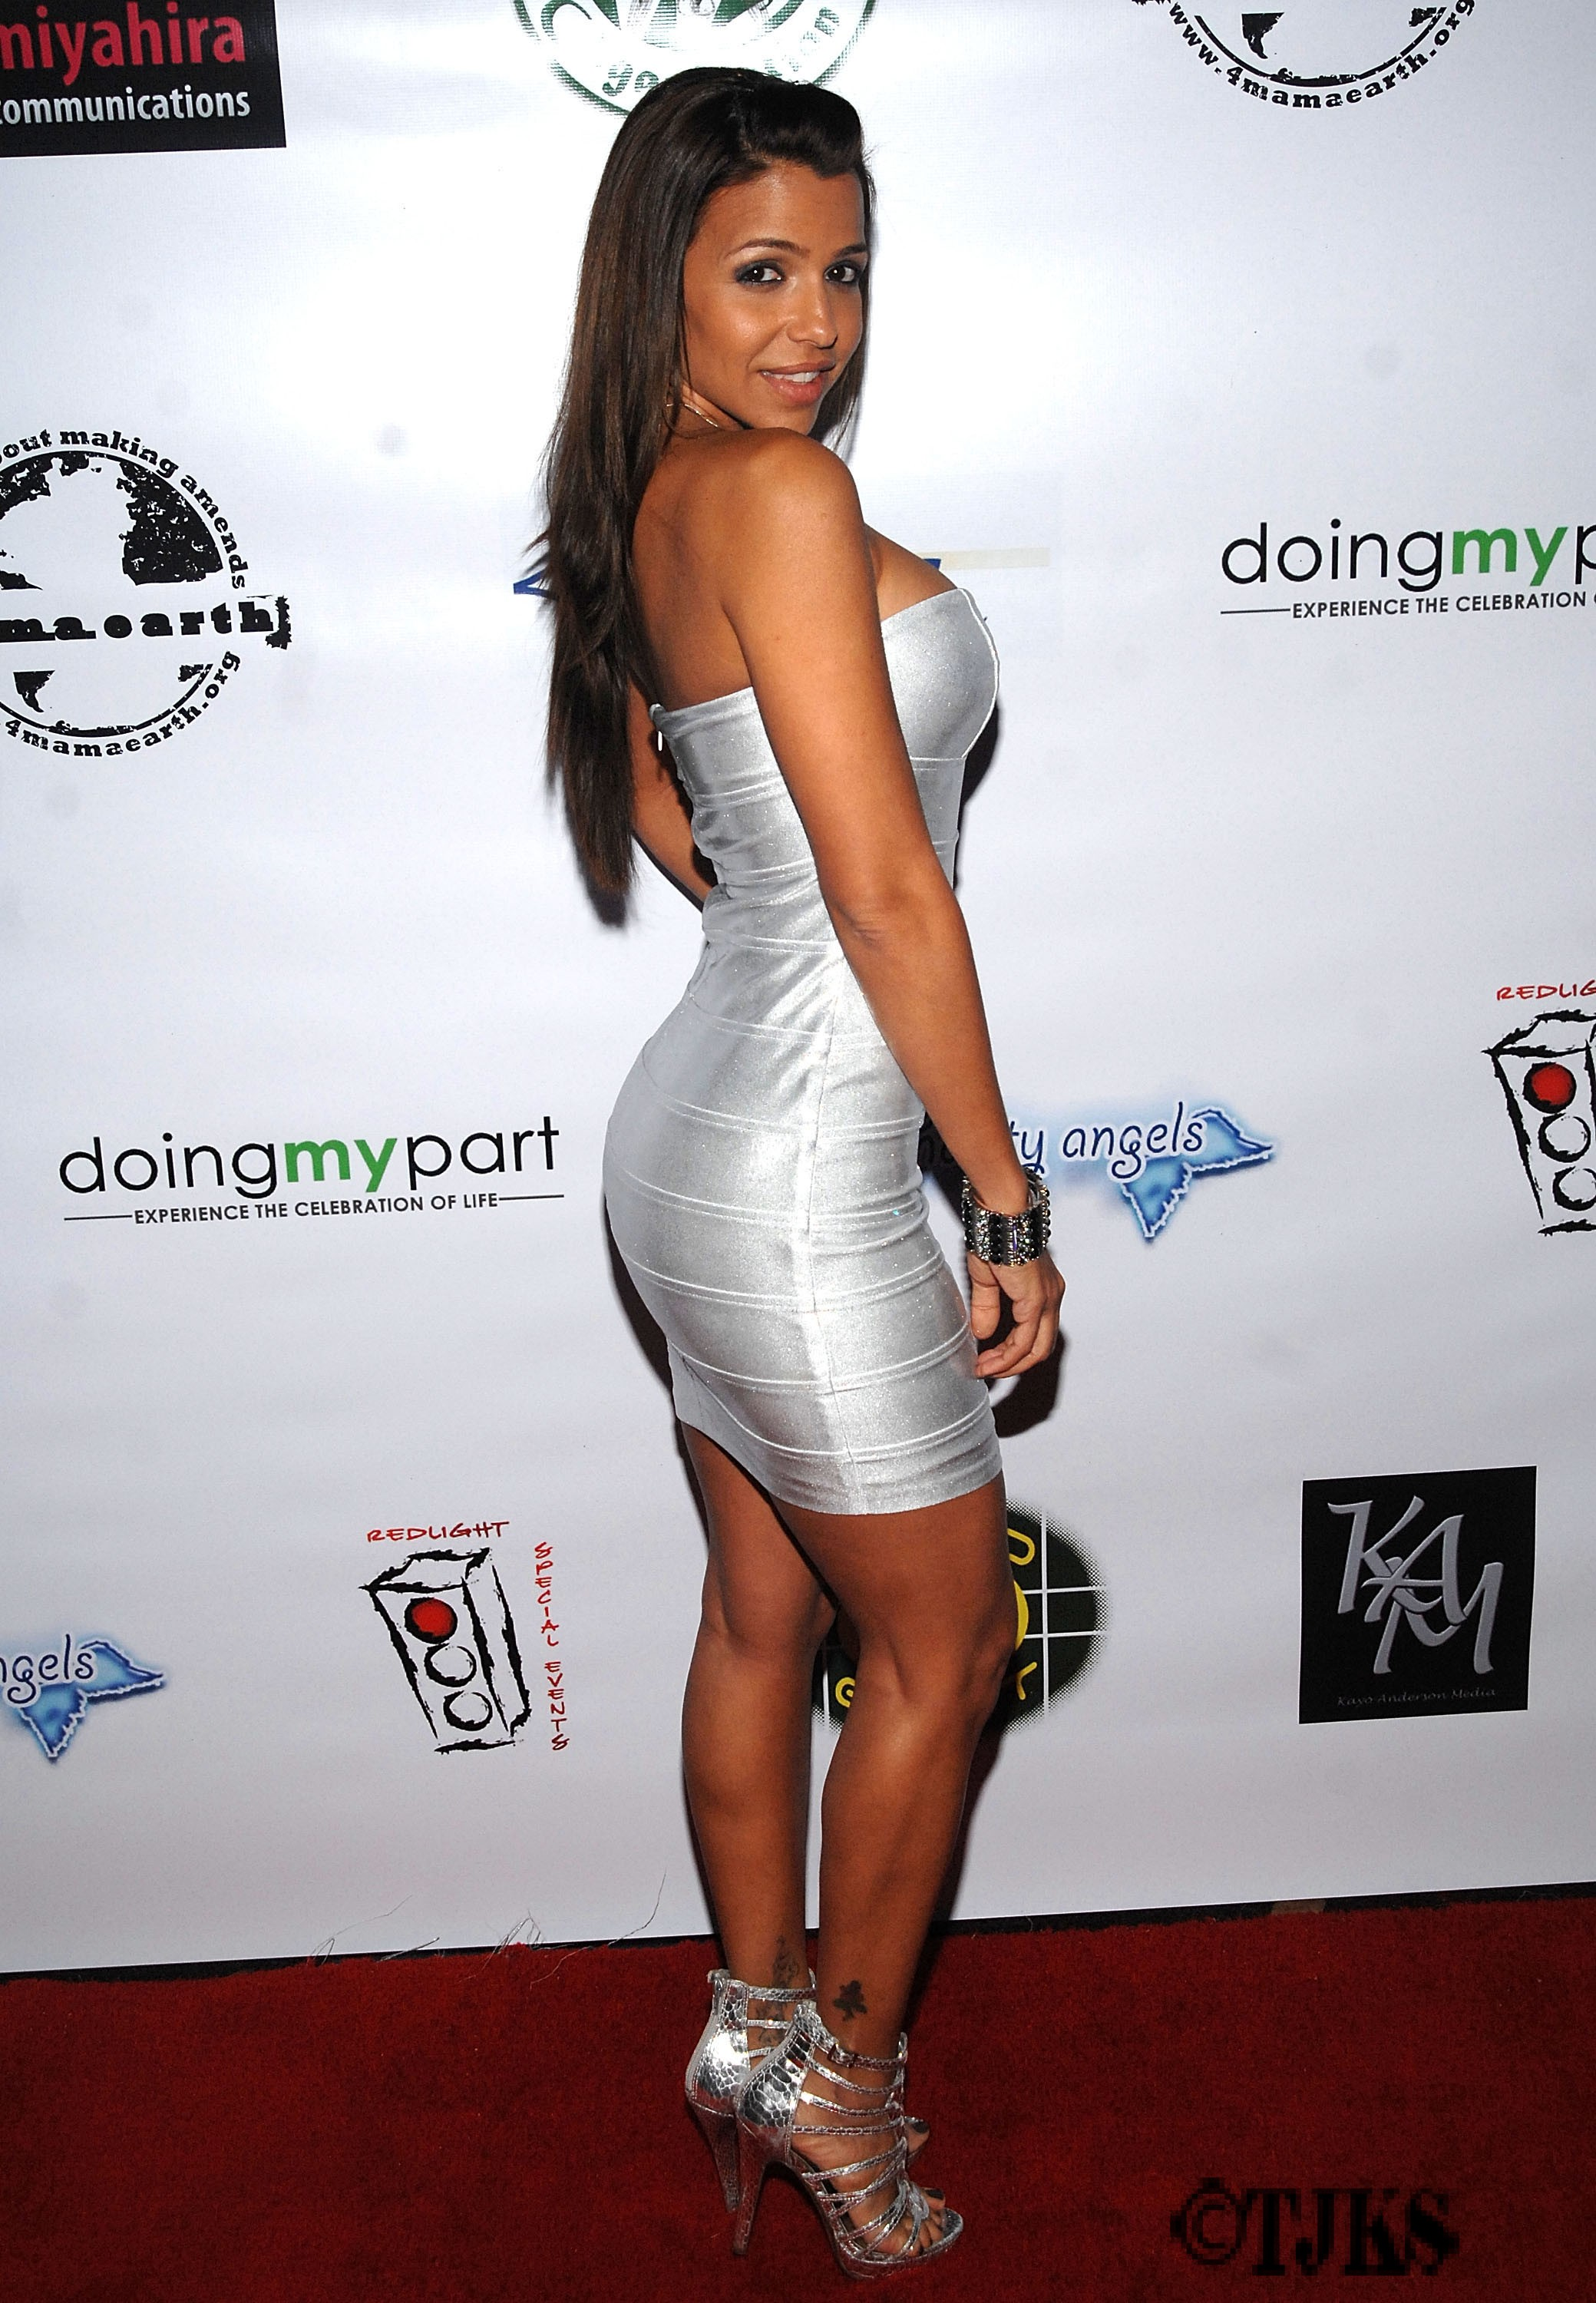 ... Vida Guerra looks hot as usual whatever the outfits be, Vida Guerra in